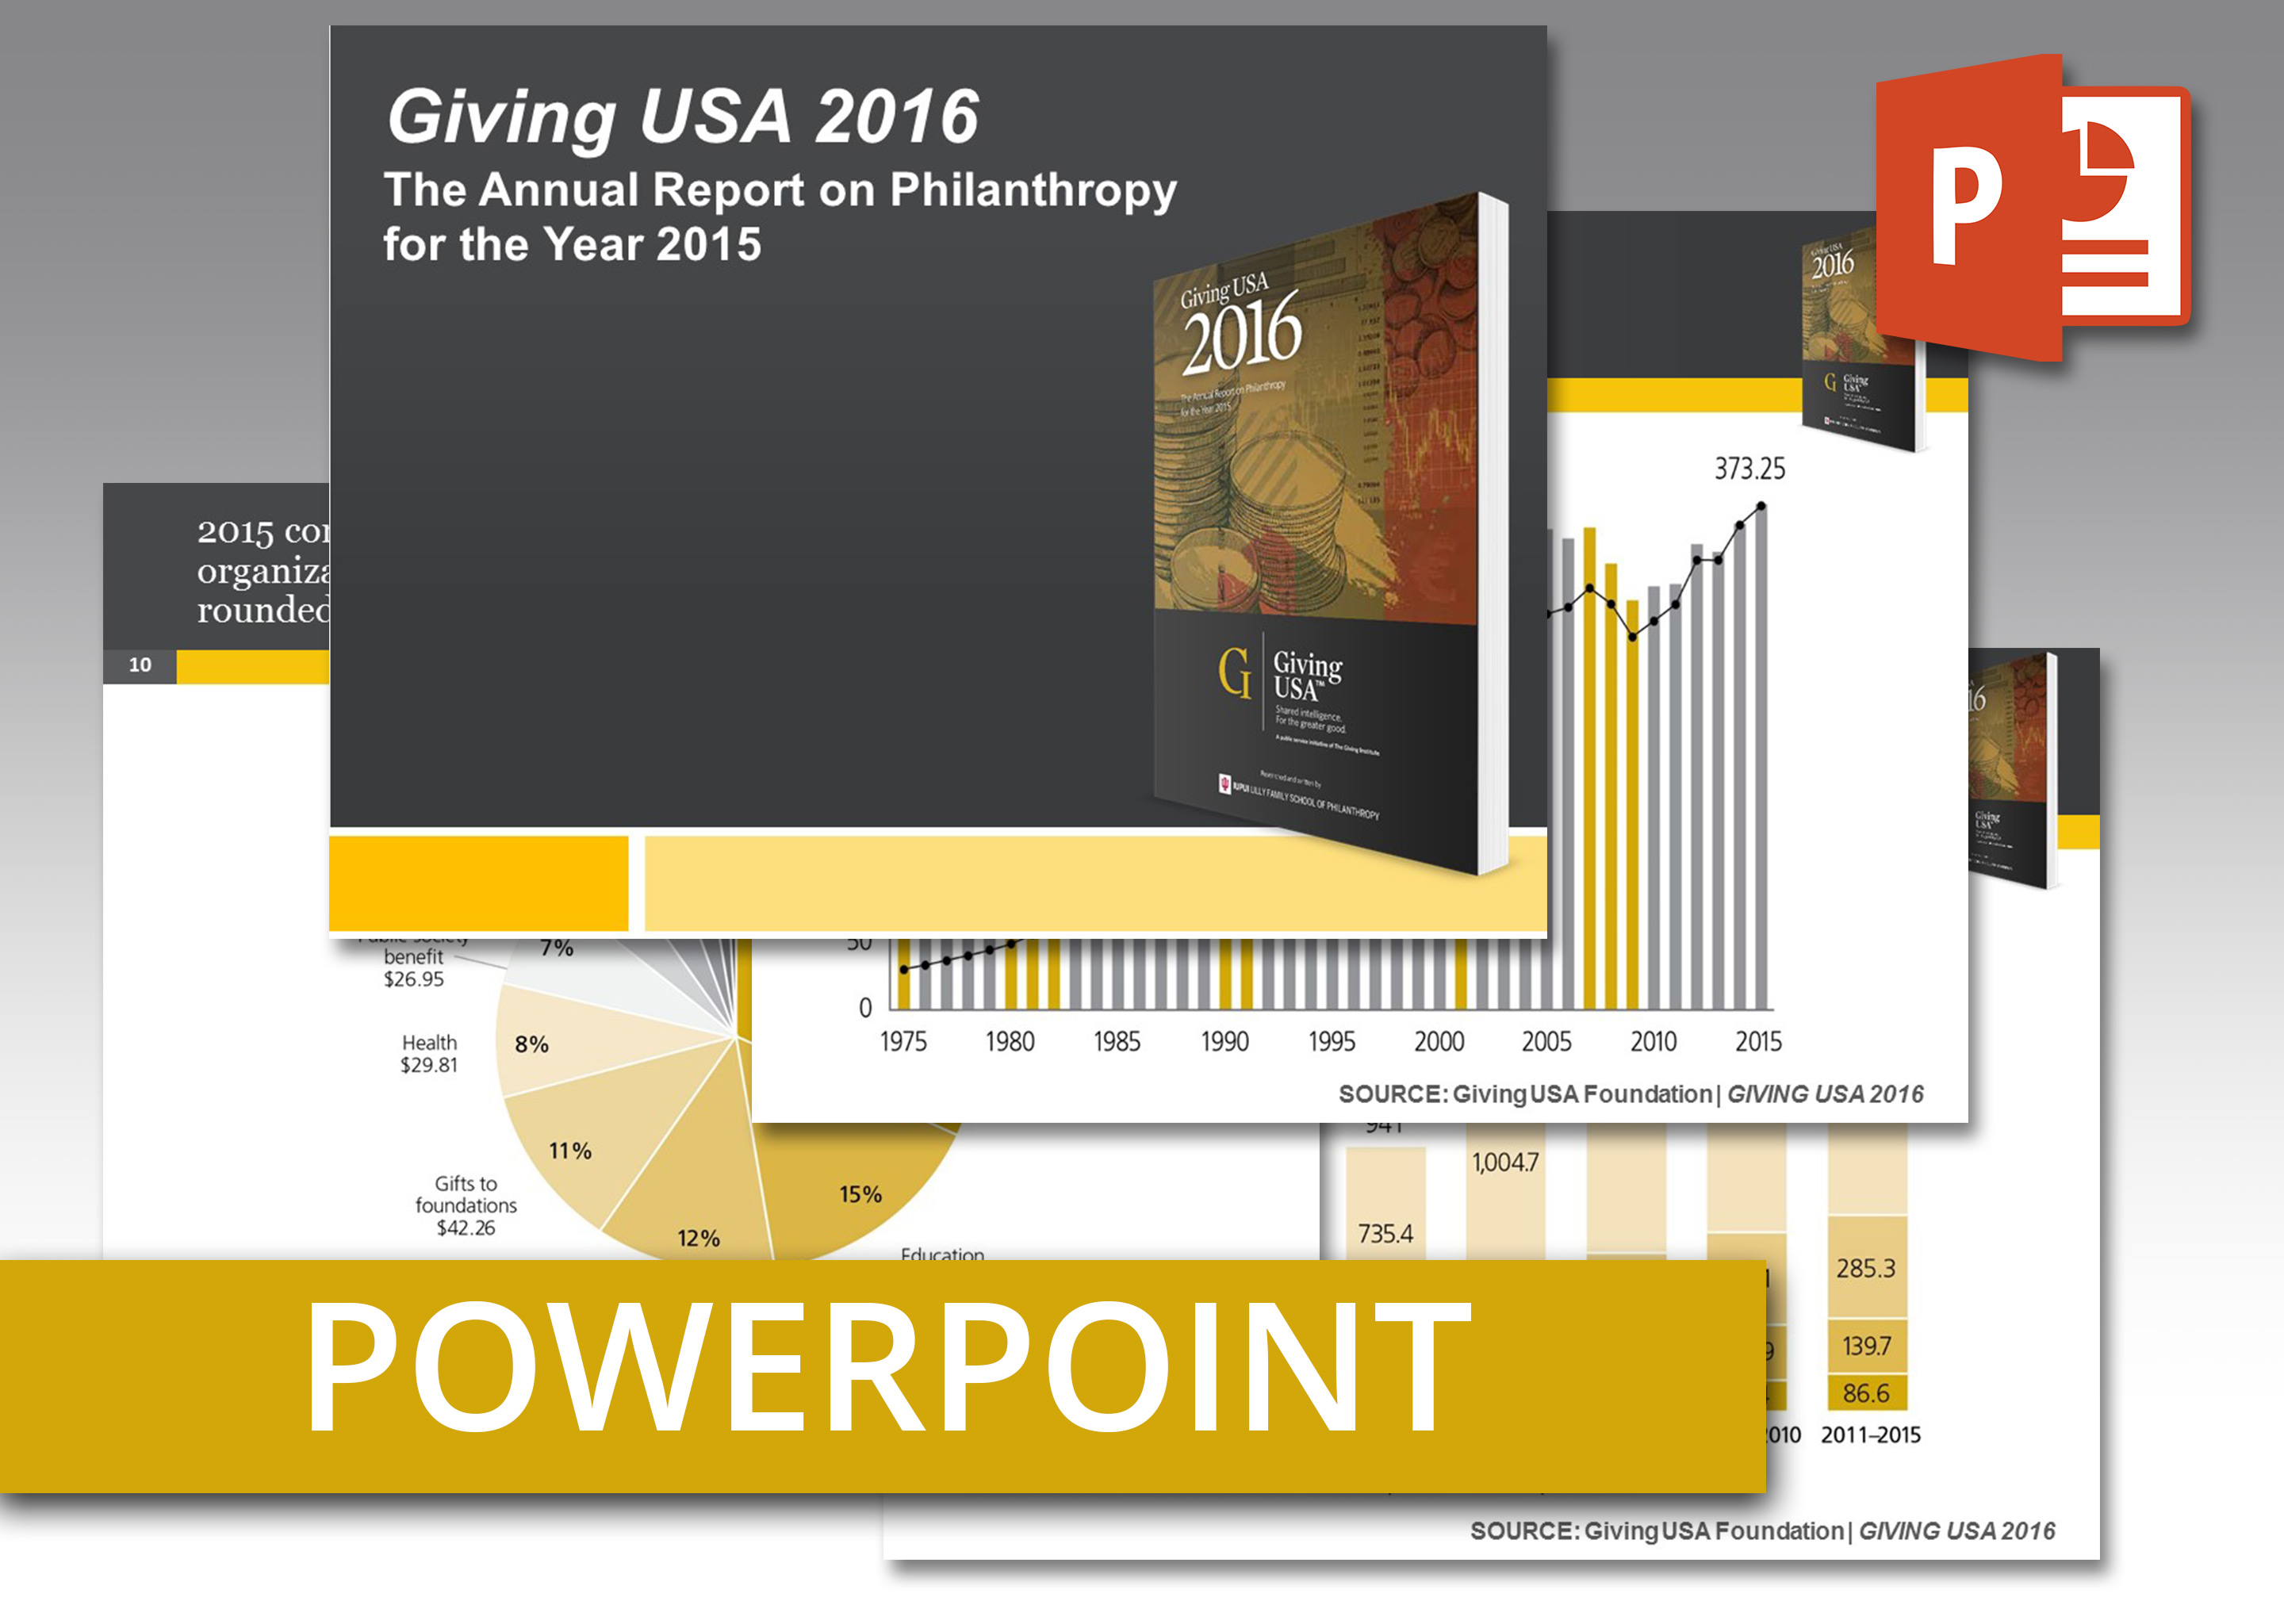 Usdgus  Inspiring Giving Usa  Powerpoint An Easytouse Presentation Of Report  With Handsome Giving Usa  Powerpoint An Easytouse Presentation Of Report Findings Including Talking Points With Lovely Microsoft Powerpoint Presentation  Free Download Full Version Also Powerpoint Beginners In Addition Comparison Contrast Essay Powerpoint And Free Download Microsoft Powerpoint  Full Version As Well As Free Presentation Templates Powerpoint Additionally How Do I Download Powerpoint On My Computer From Givingusaorg With Usdgus  Handsome Giving Usa  Powerpoint An Easytouse Presentation Of Report  With Lovely Giving Usa  Powerpoint An Easytouse Presentation Of Report Findings Including Talking Points And Inspiring Microsoft Powerpoint Presentation  Free Download Full Version Also Powerpoint Beginners In Addition Comparison Contrast Essay Powerpoint From Givingusaorg